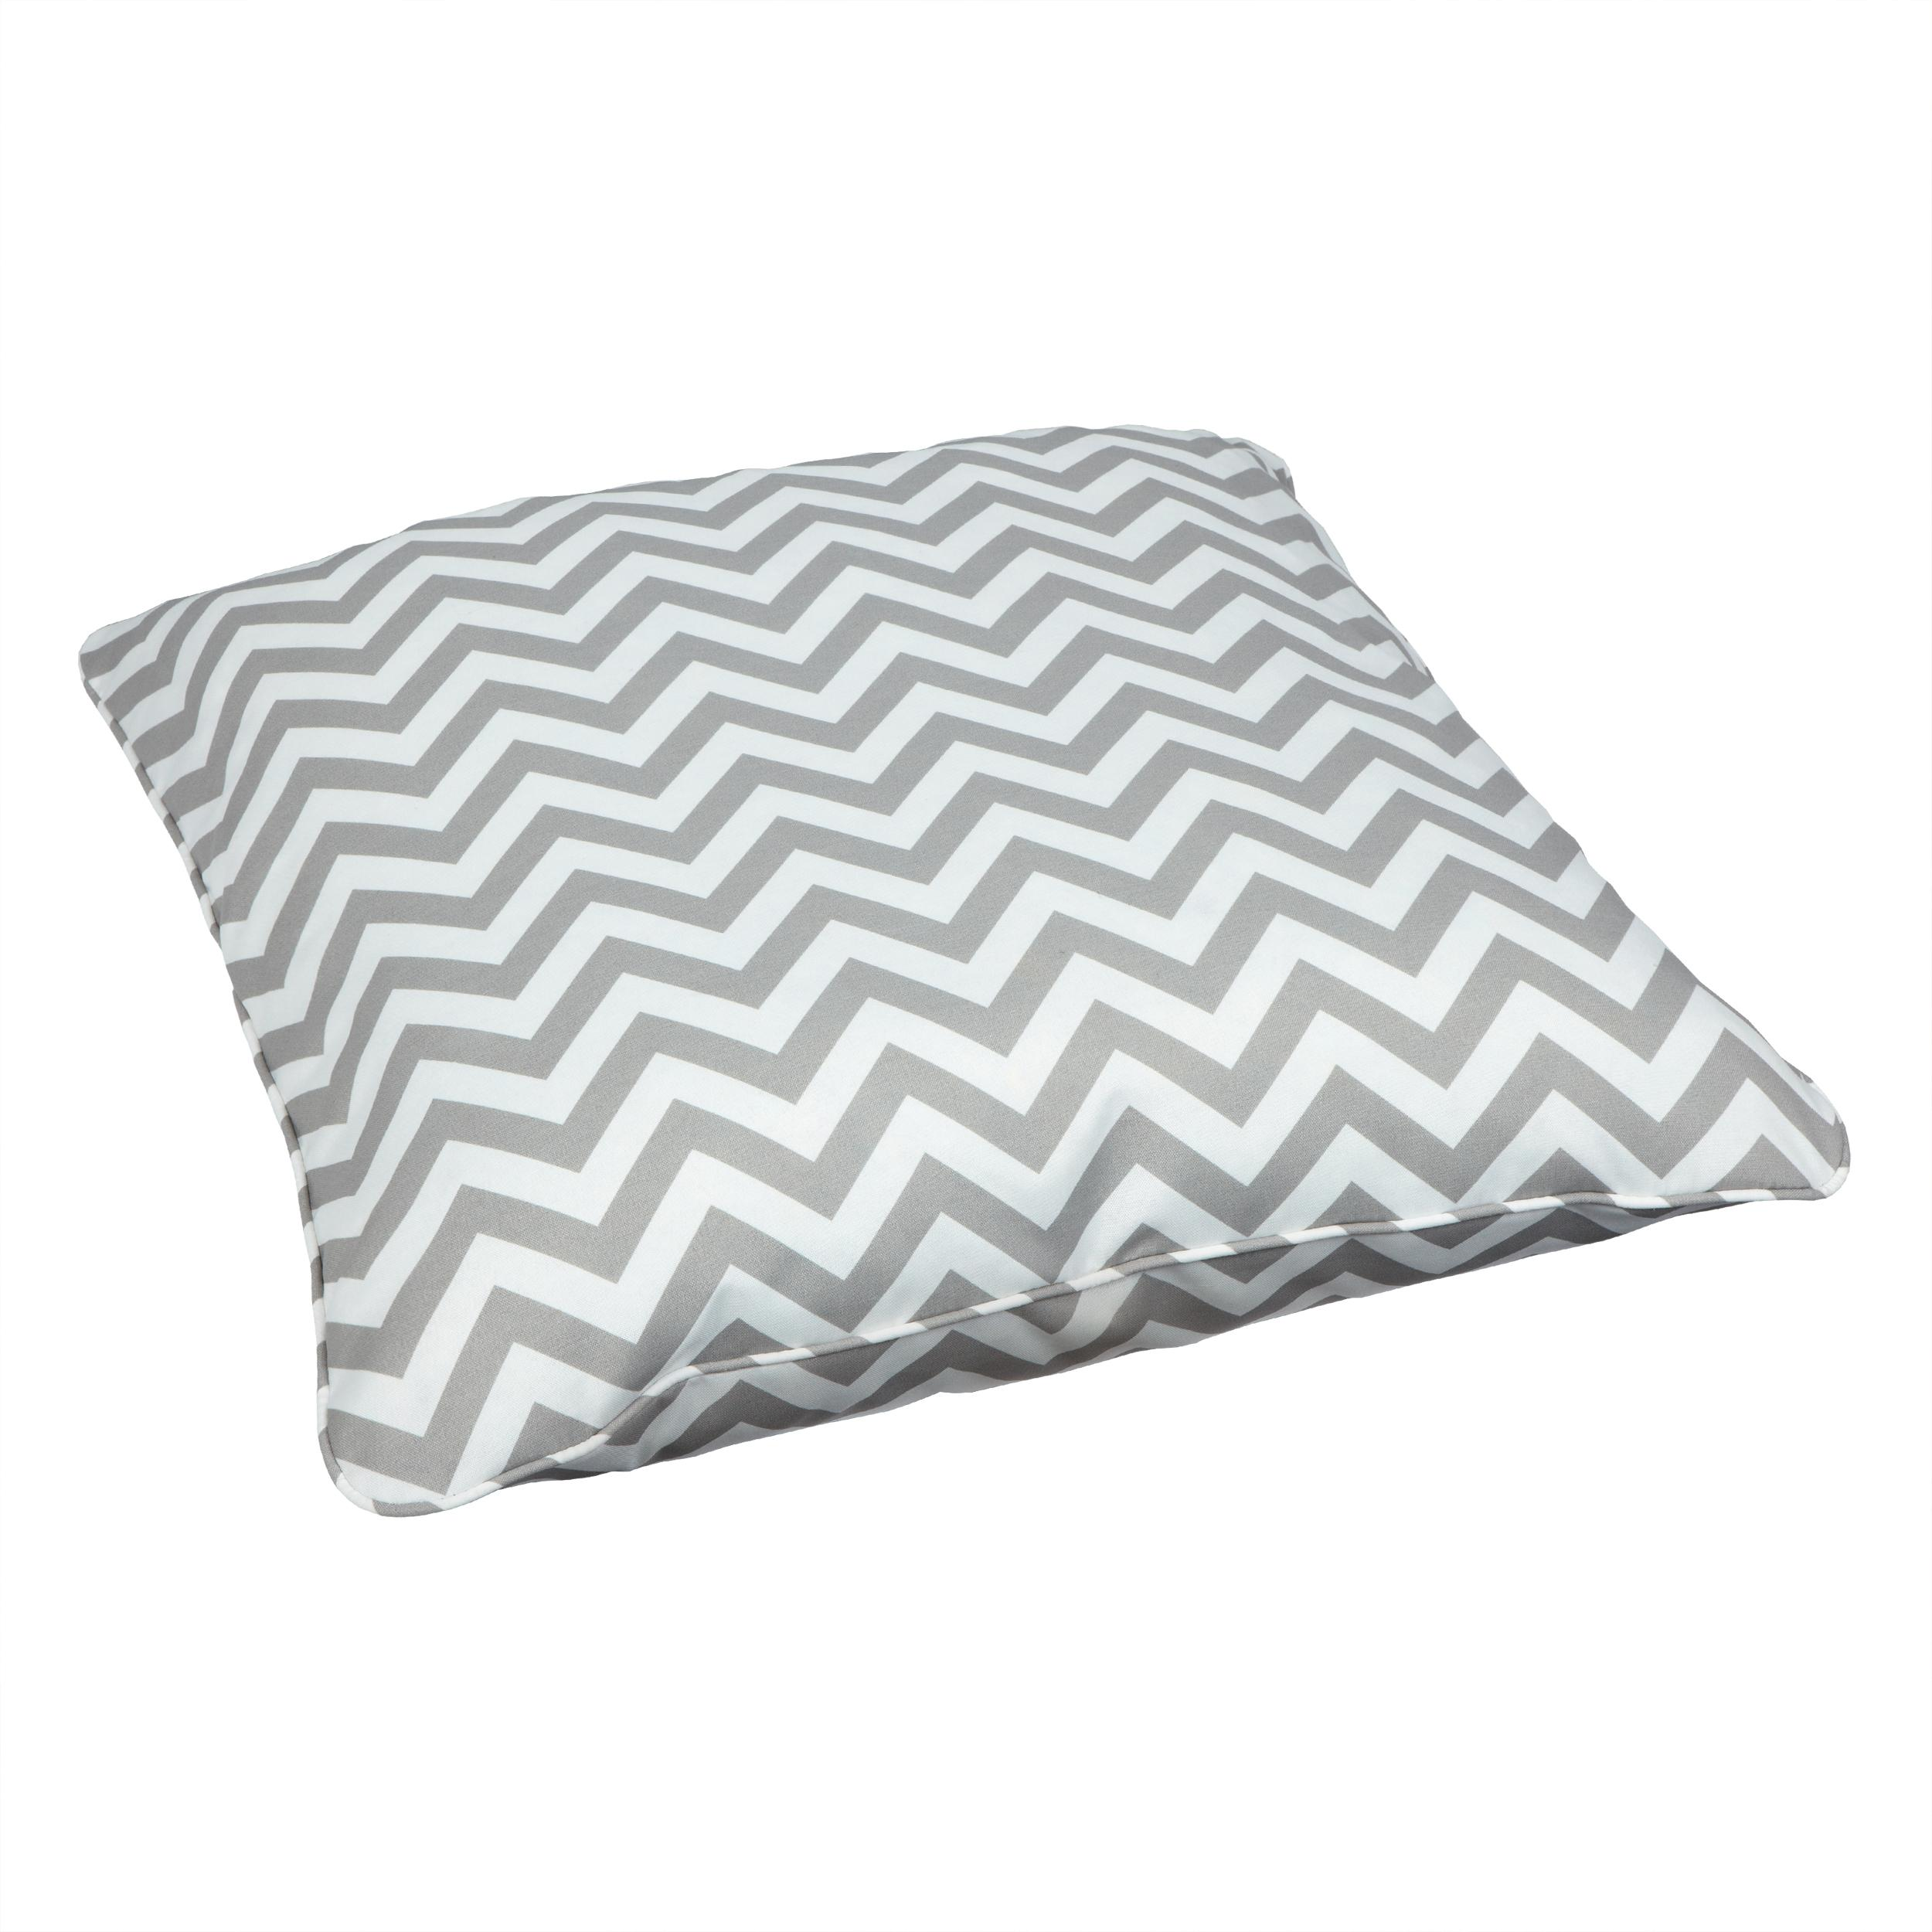 Gray Floor Pillows : Amazon.com : Mozaic Sabrina Corded Indoor/Outdoor 26-Inch Floor Pillow, Large, Chevron Grey ...